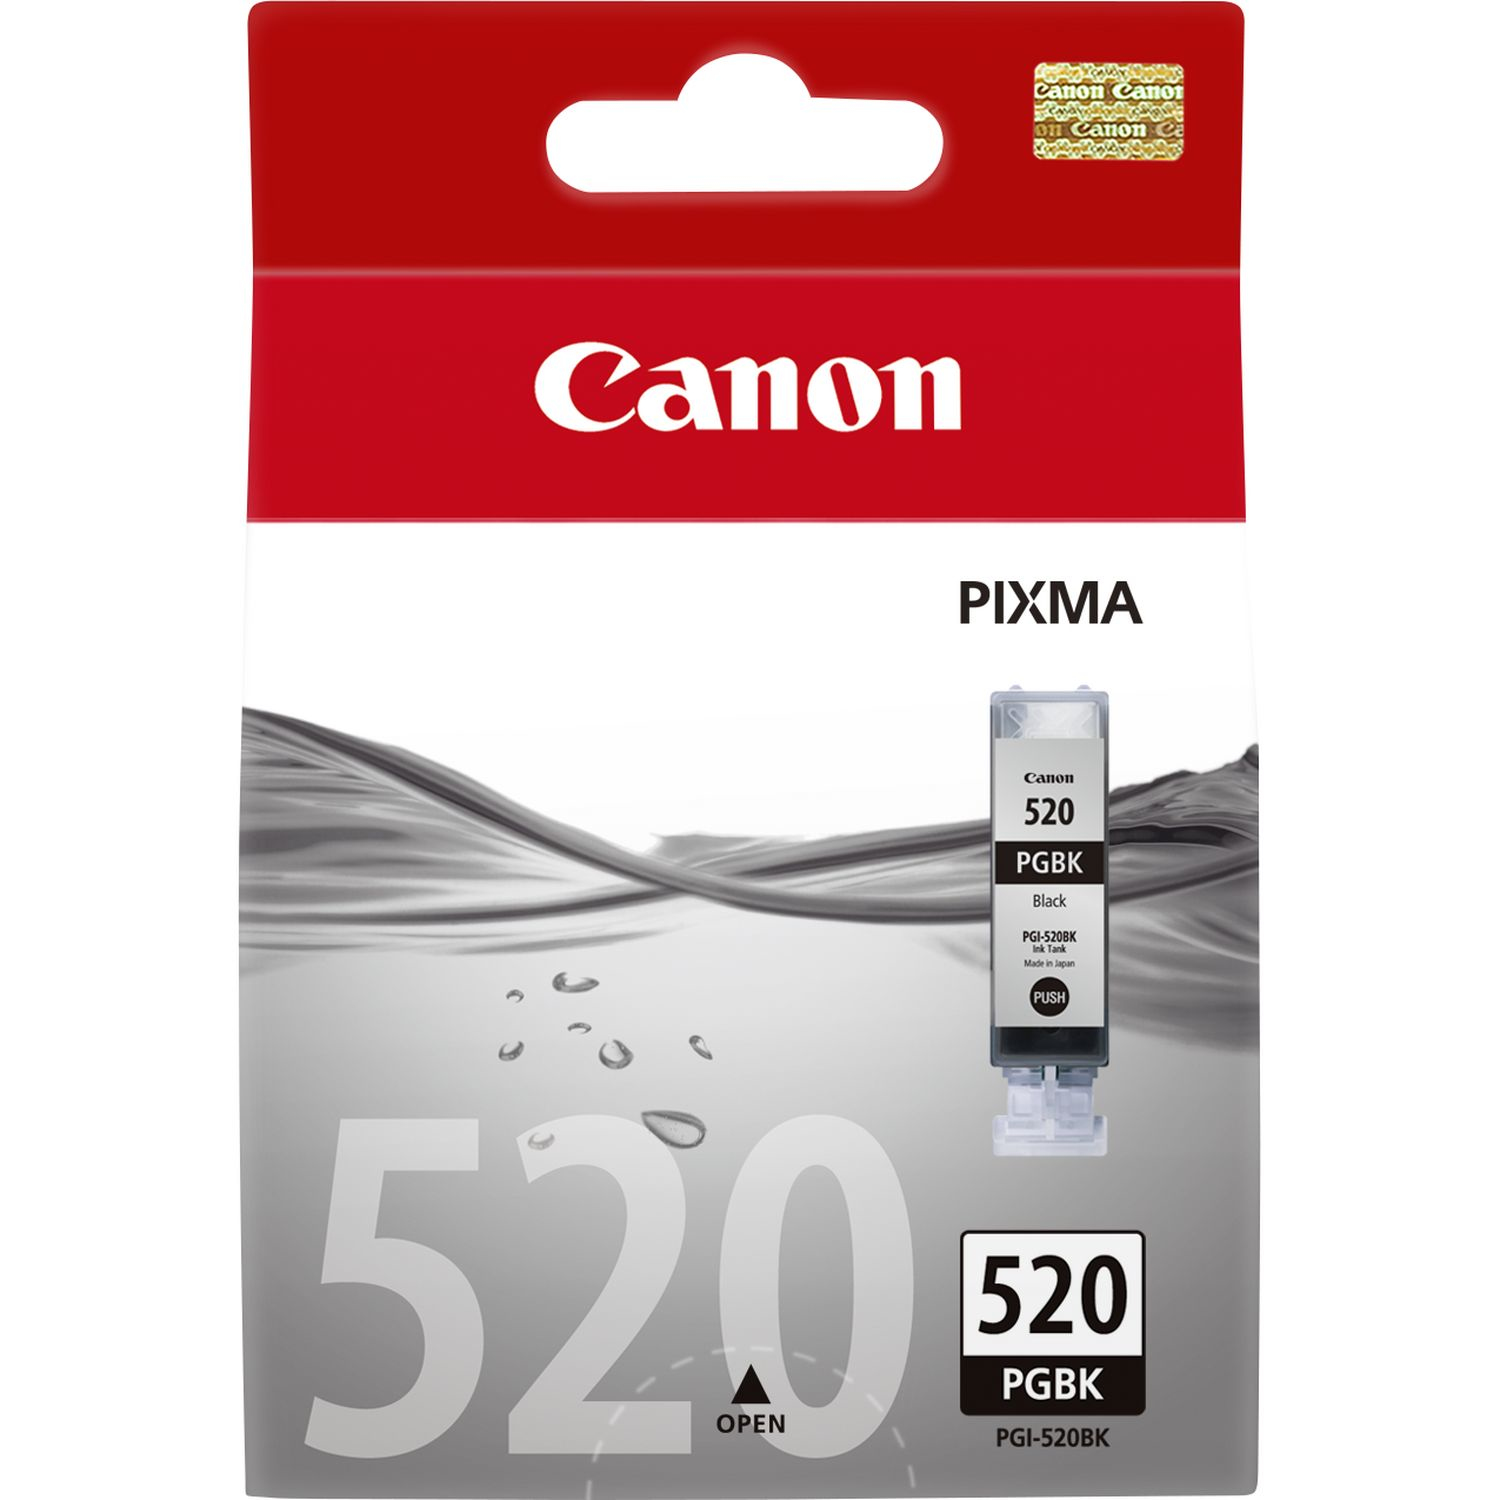 Canpgi-520bk   Canon Pgi-520 Black Ink        Ip3600 Ip4600 Mp540 Mp620                                    - UF01